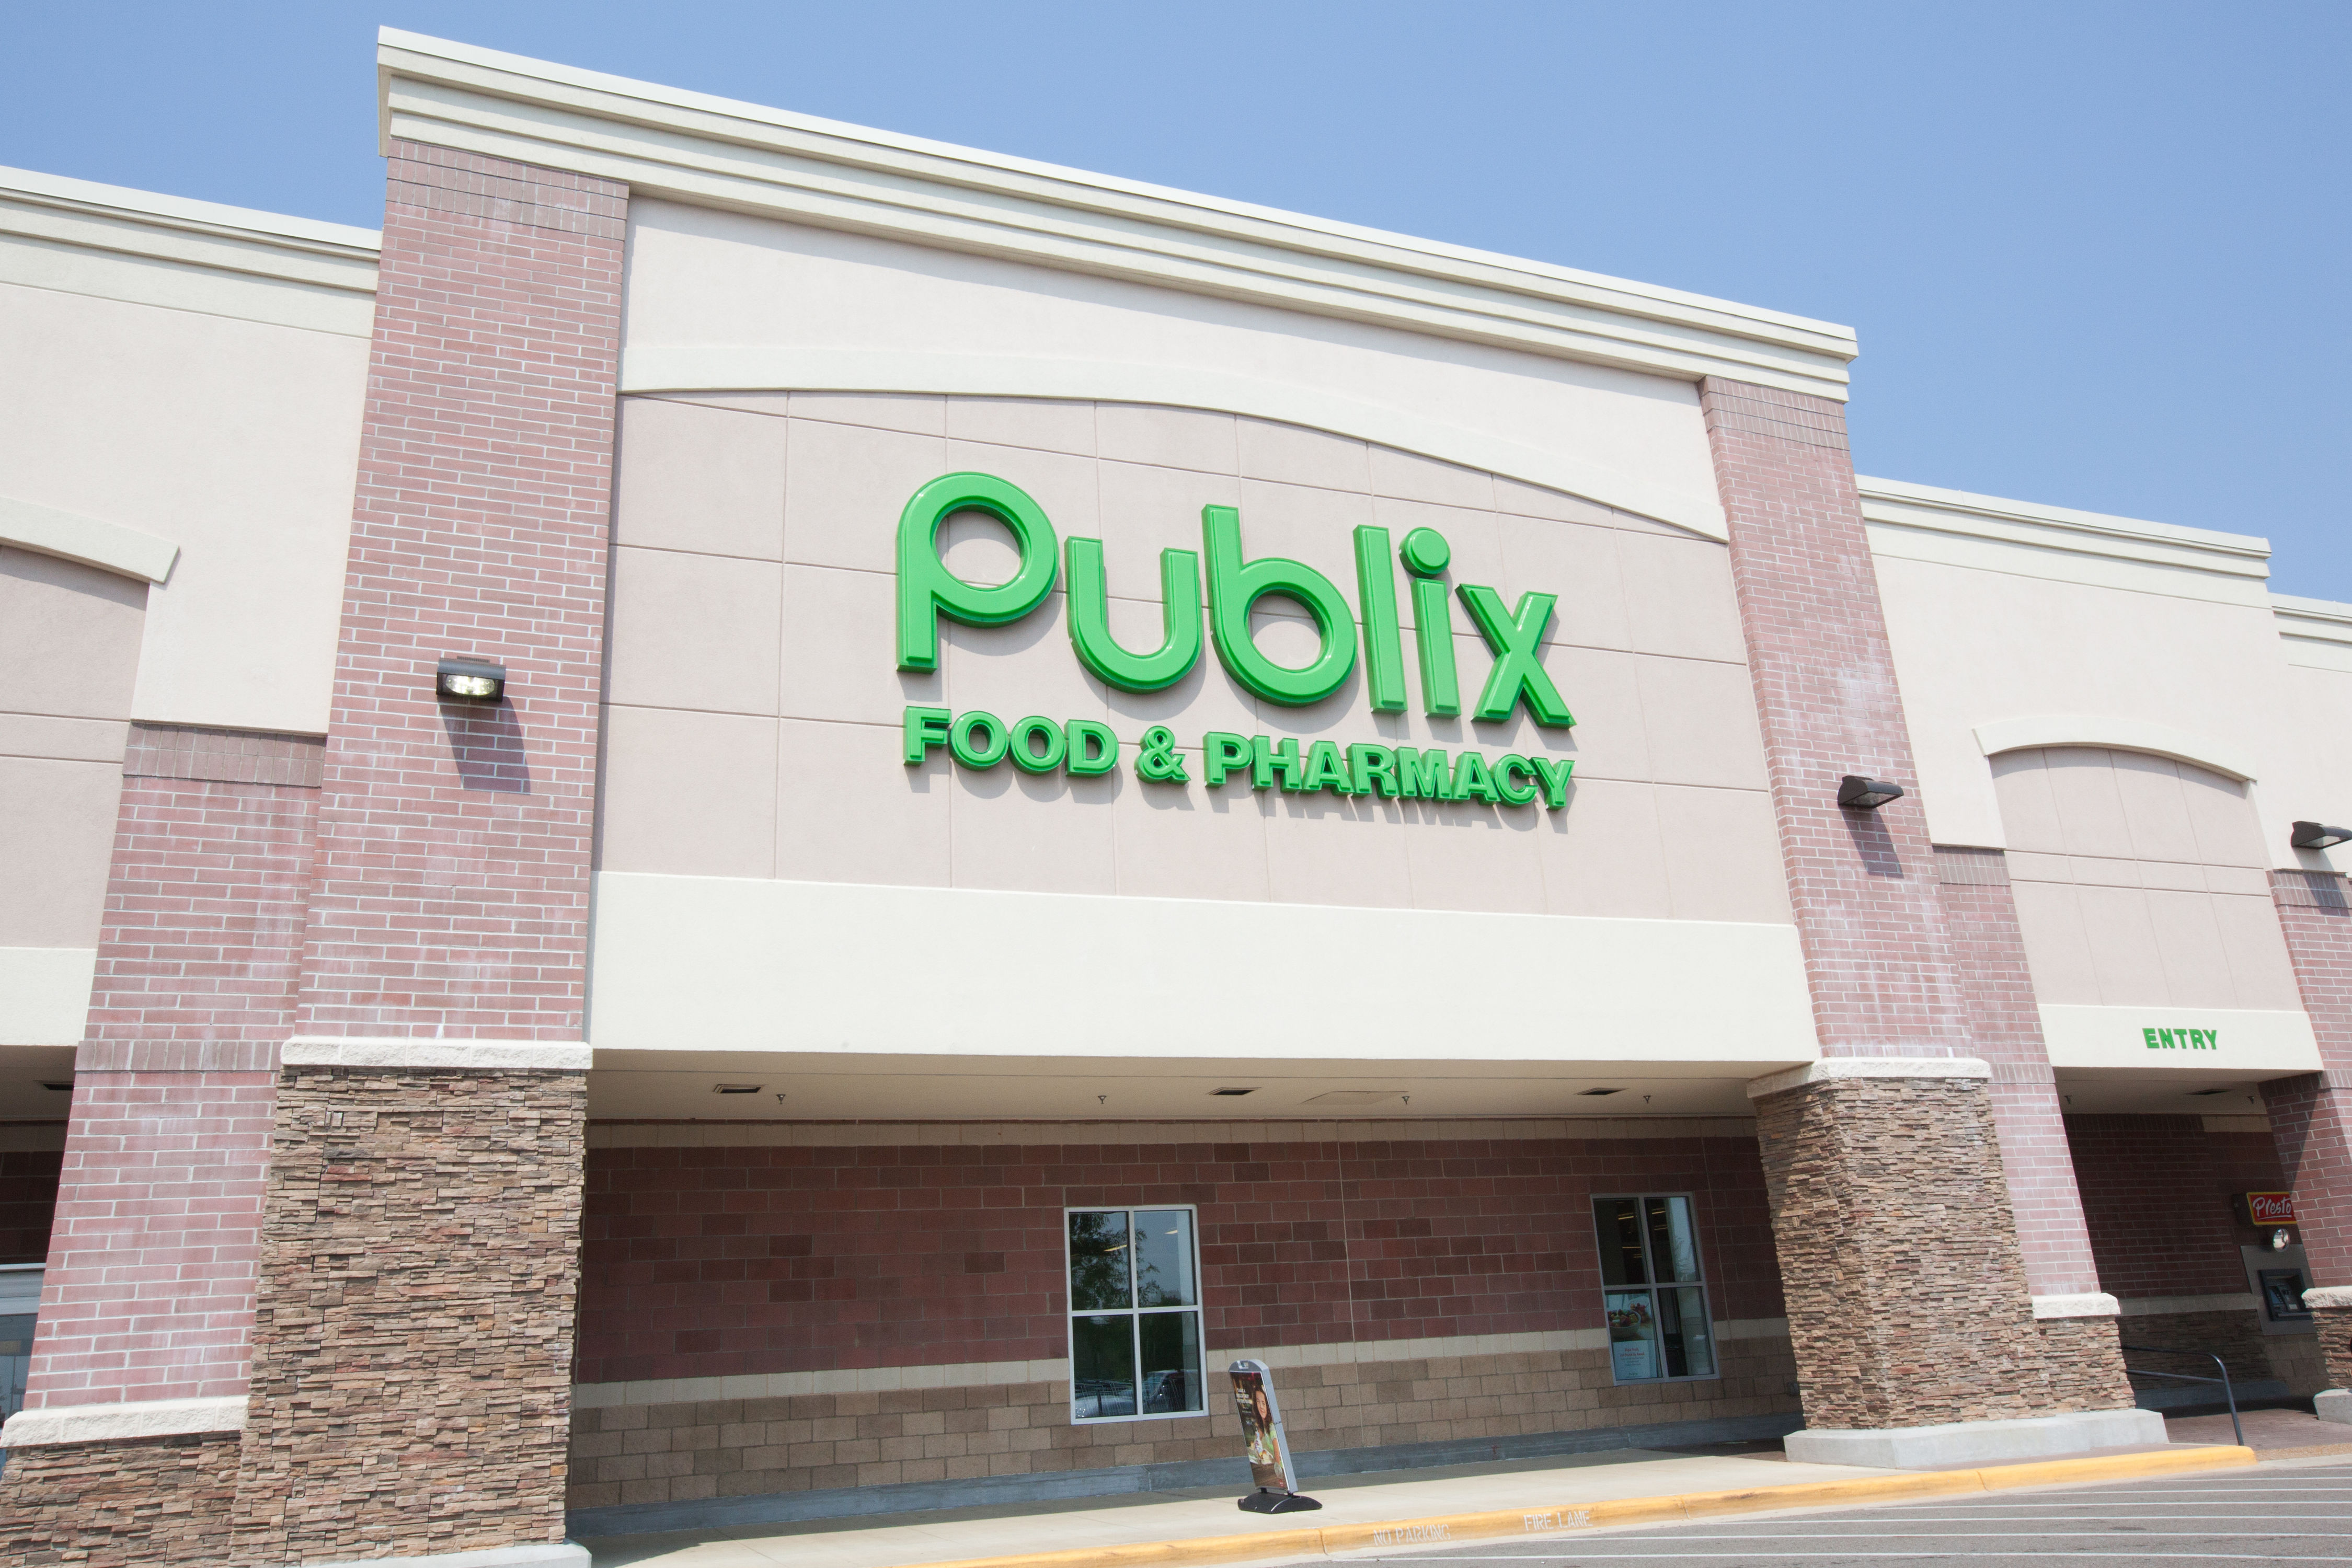 10 Publix Holiday Commercials That Made Us Weep